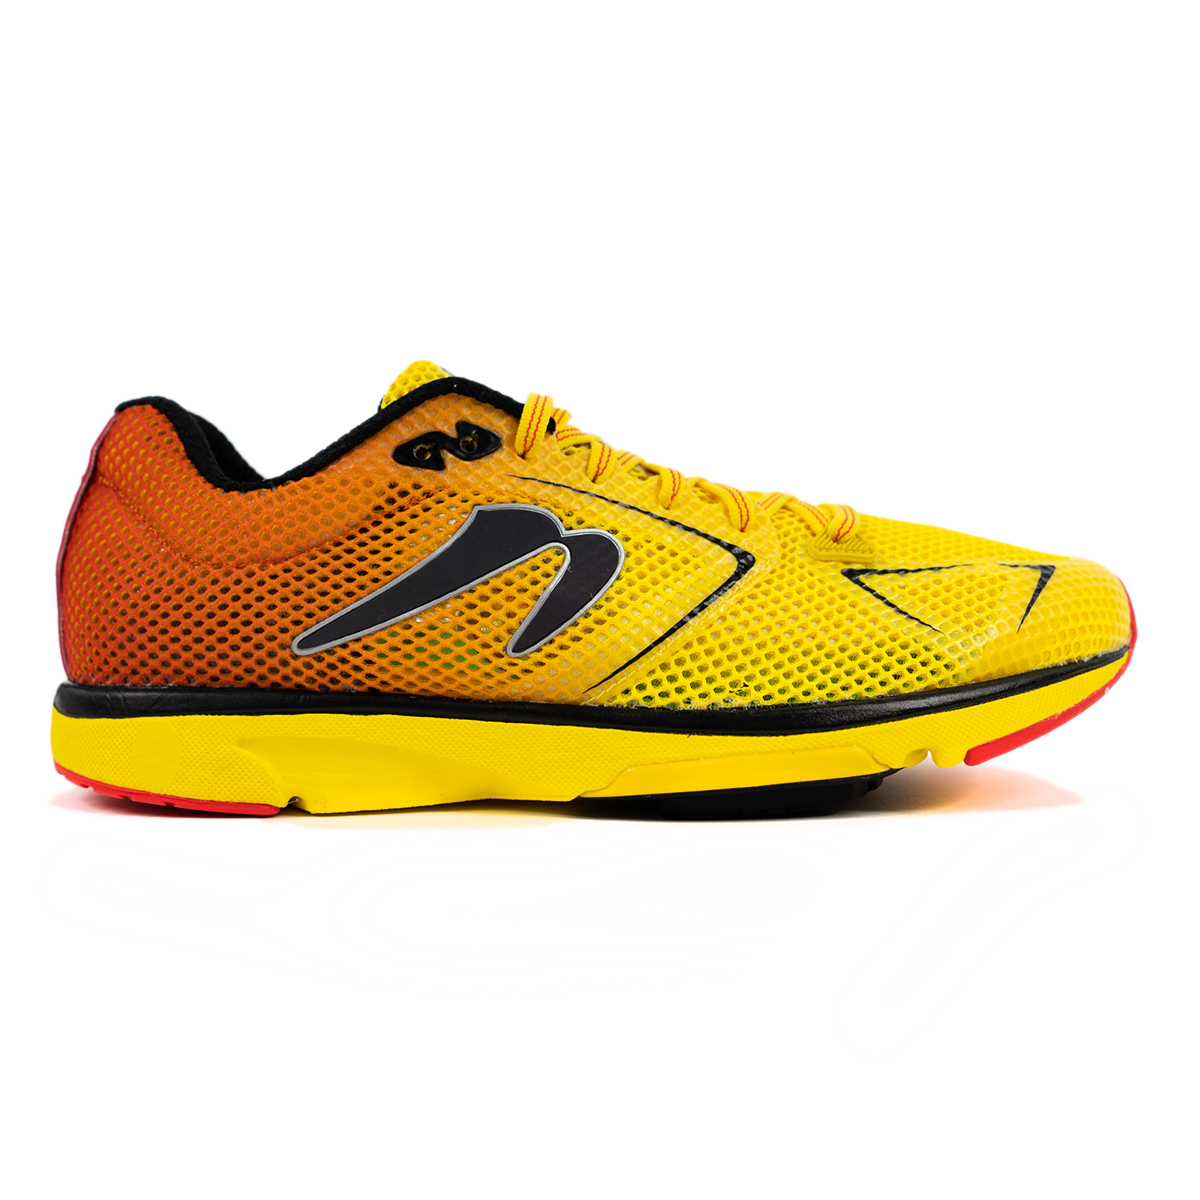 Men's Newton Distance 9 Running Shoe - Color: Sunfire/Black (Regular Width) - Size: 6, Sunfire/Black, large, image 1